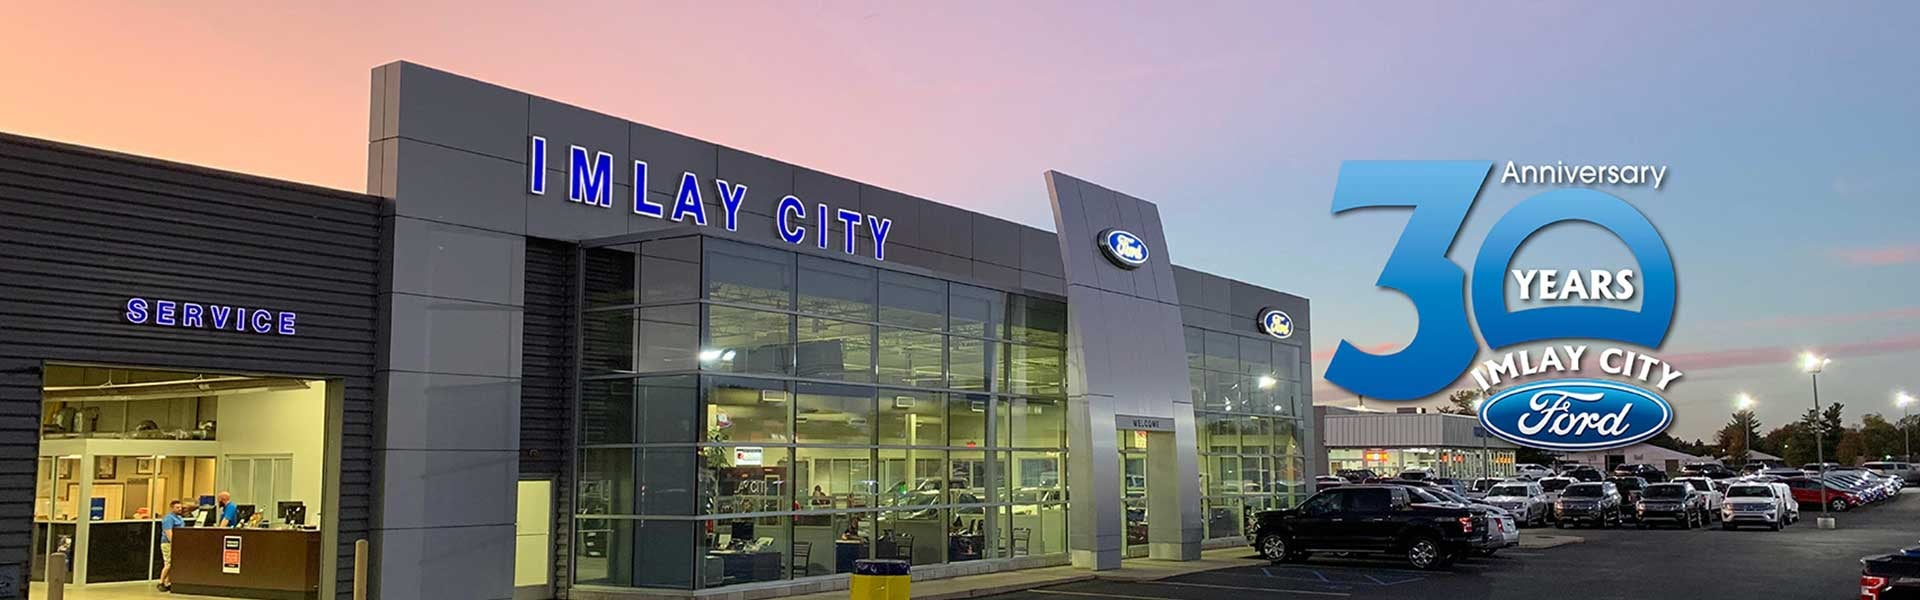 ford michigan dealership imlay city ford ford michigan dealership imlay city ford